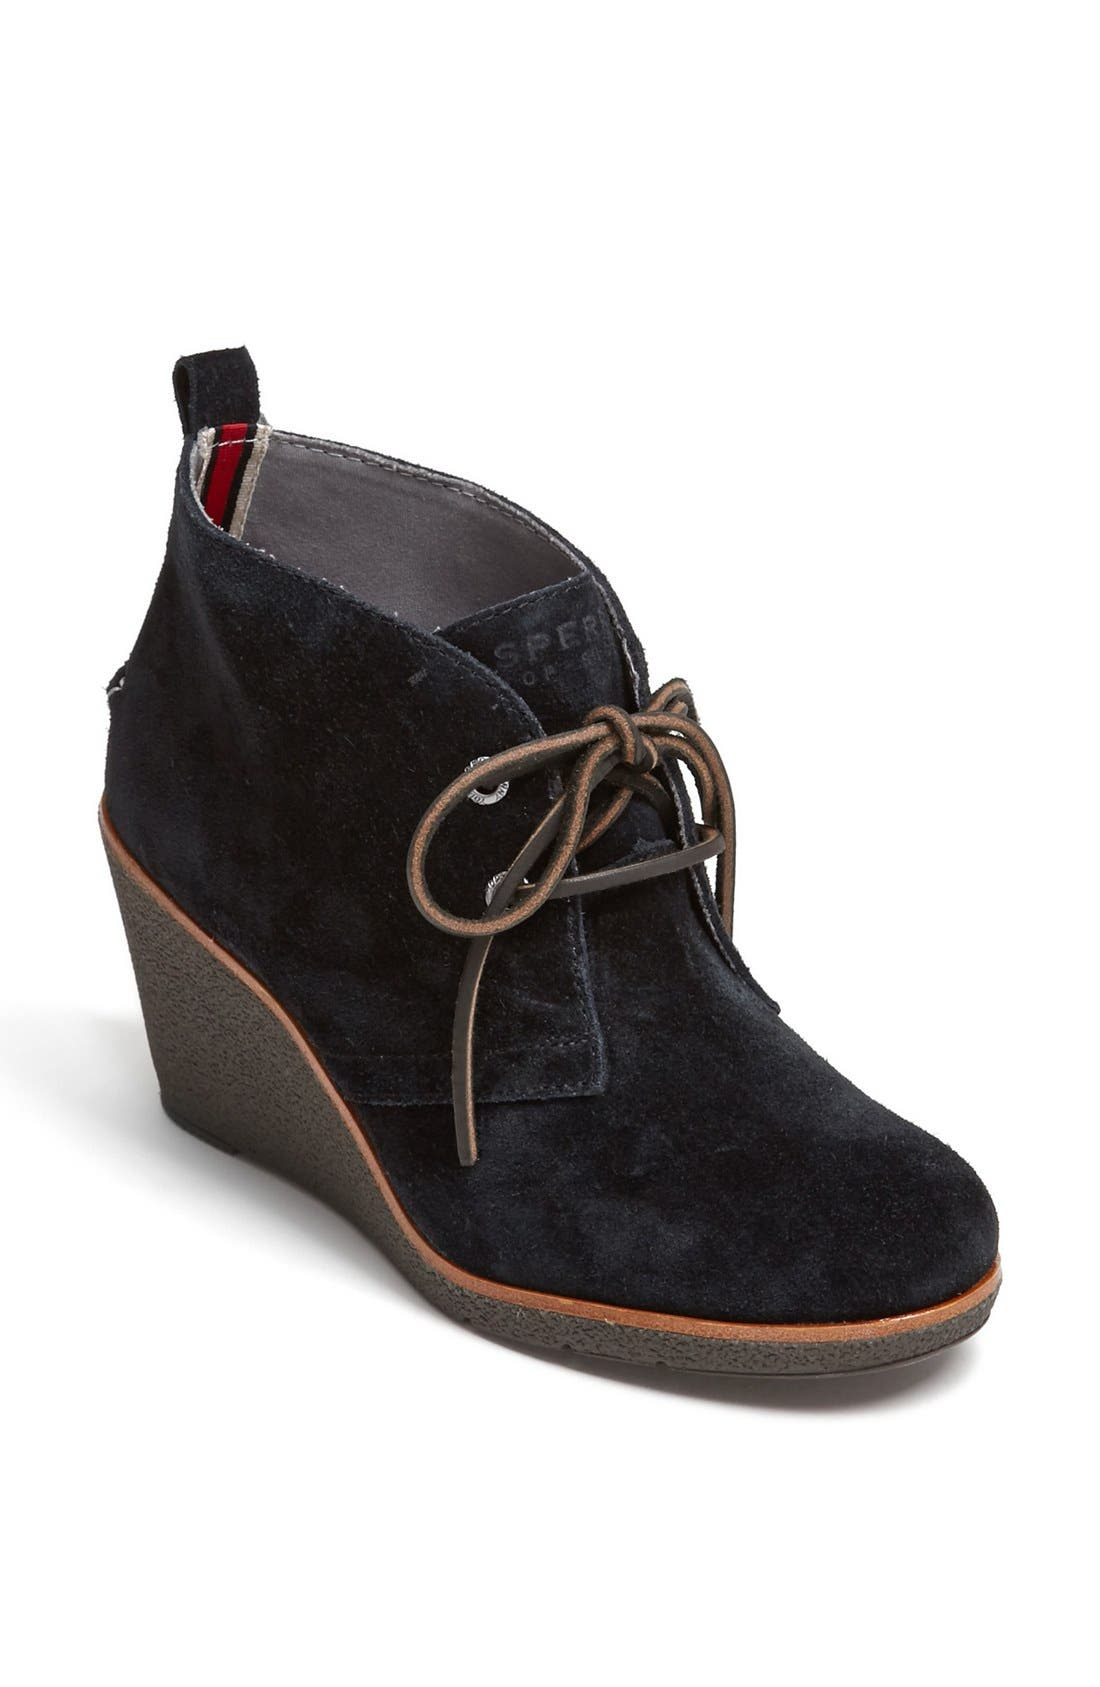 Alternate Image 1 Selected - Sperry Top Sider® 'Harlow' Bootie